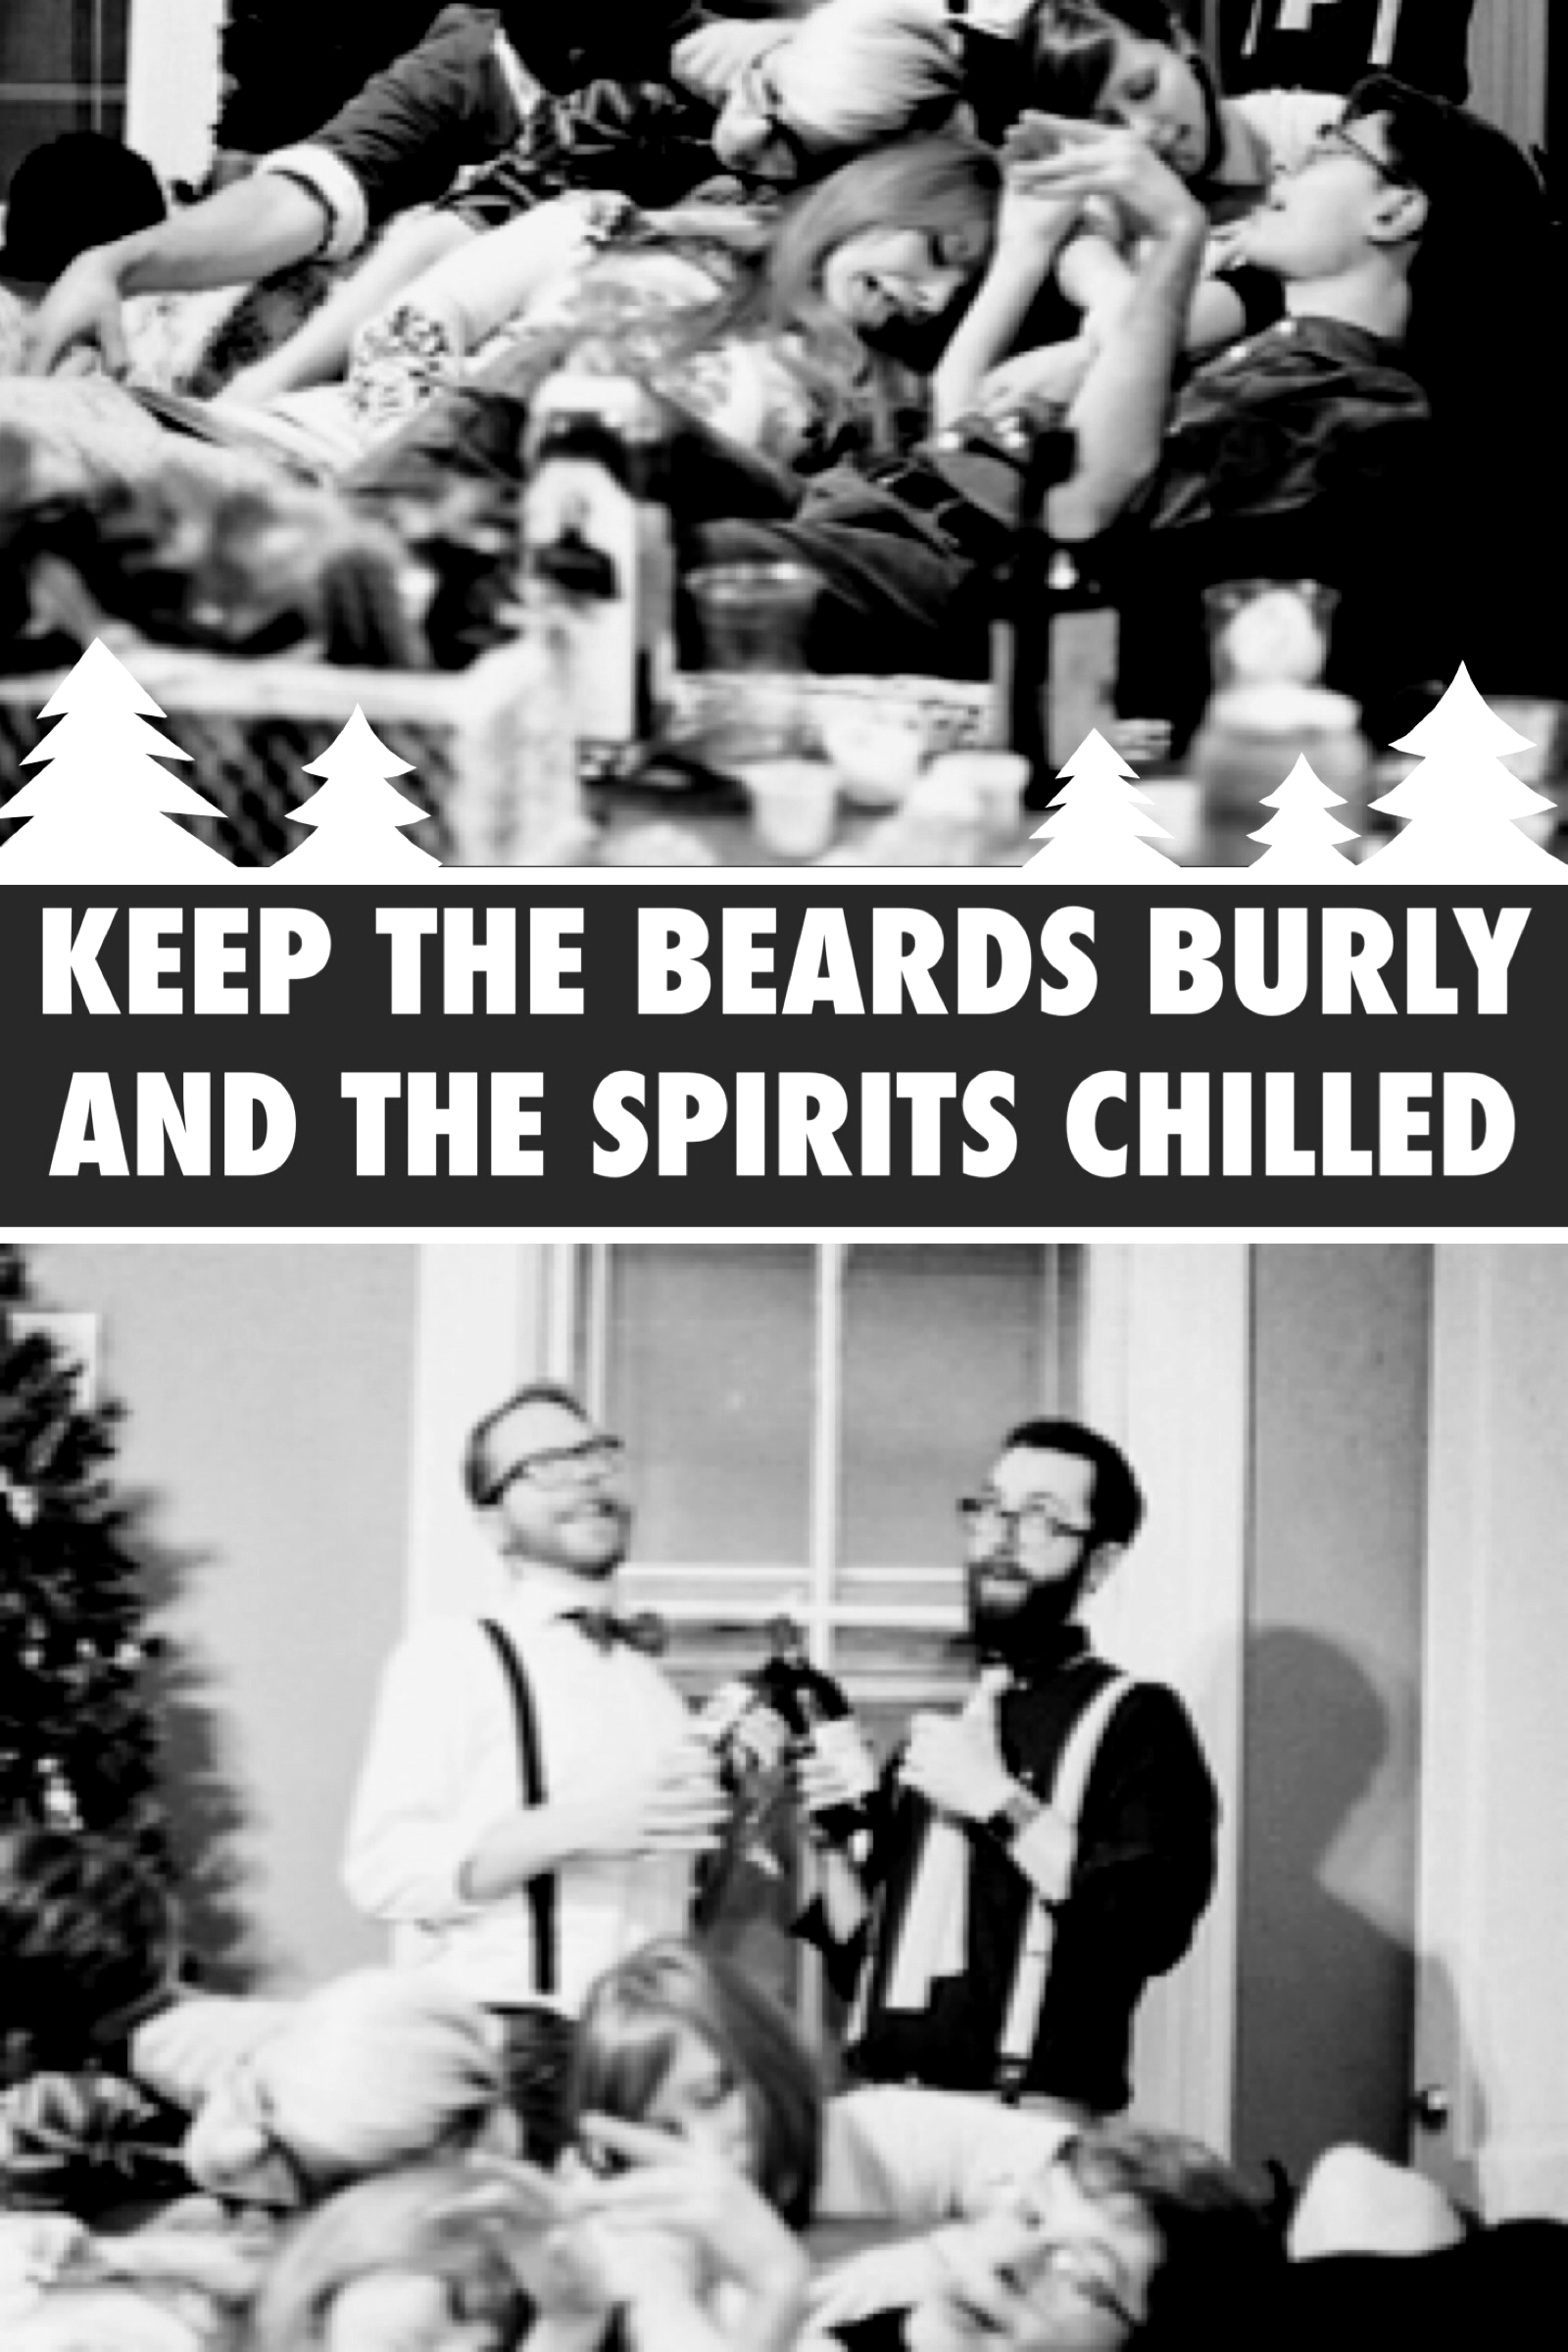 10 - Keep the Beards Burly and the Spirits Chilled.jpg